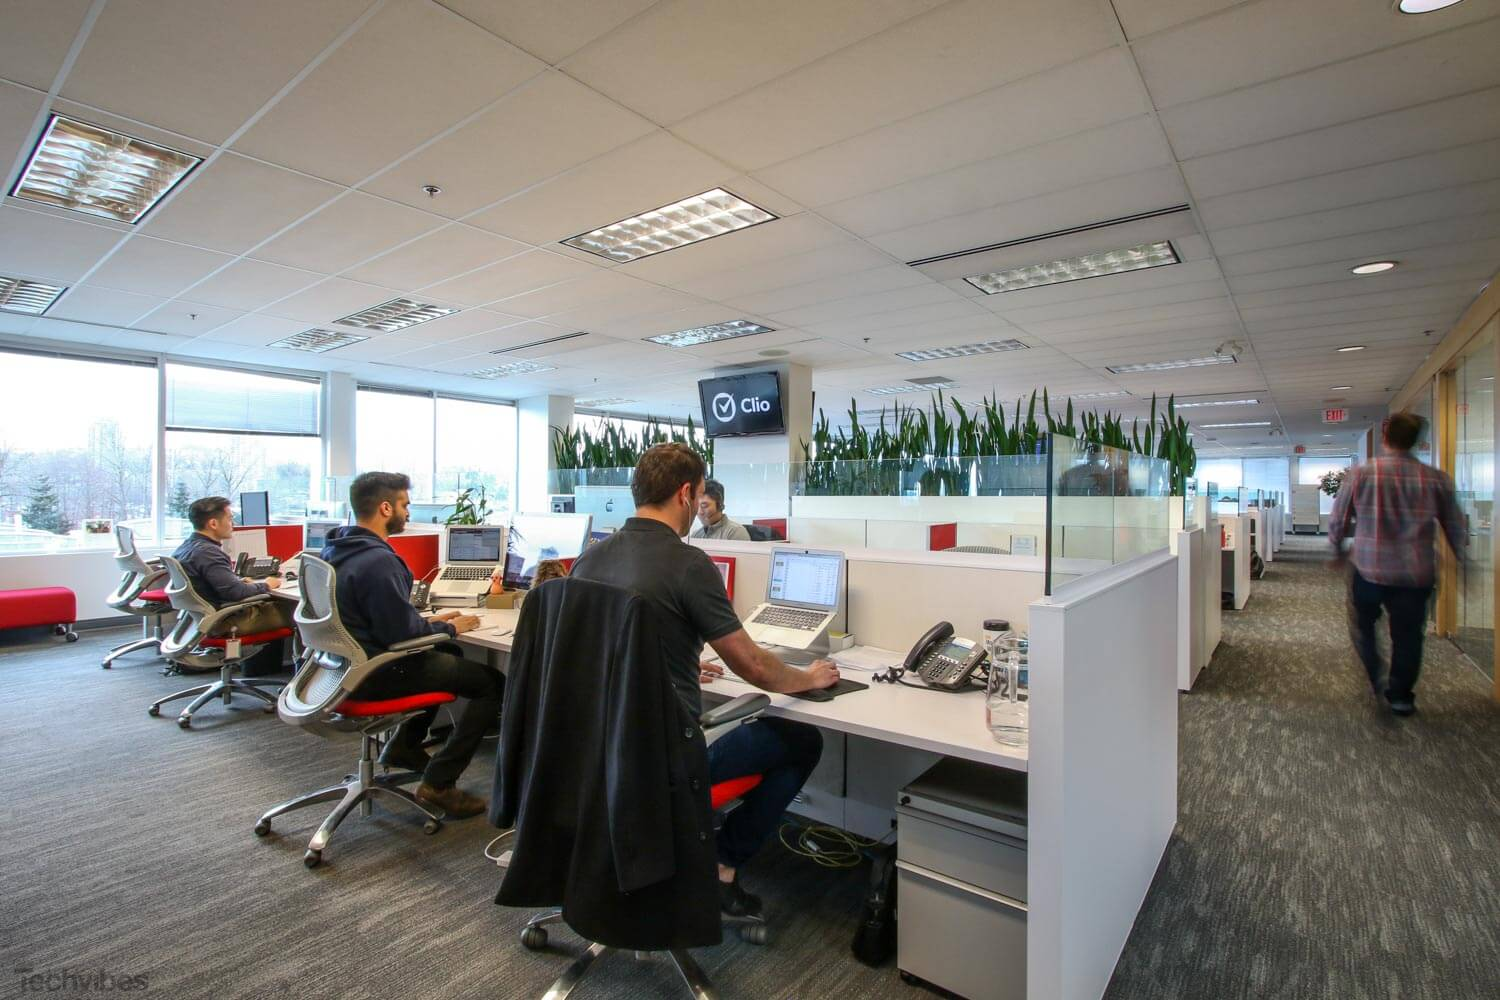 SSDG Interior Designers Worked With Clio To Create The Open Concept Workspace Office Design Won Firm Institute Of BCs Award